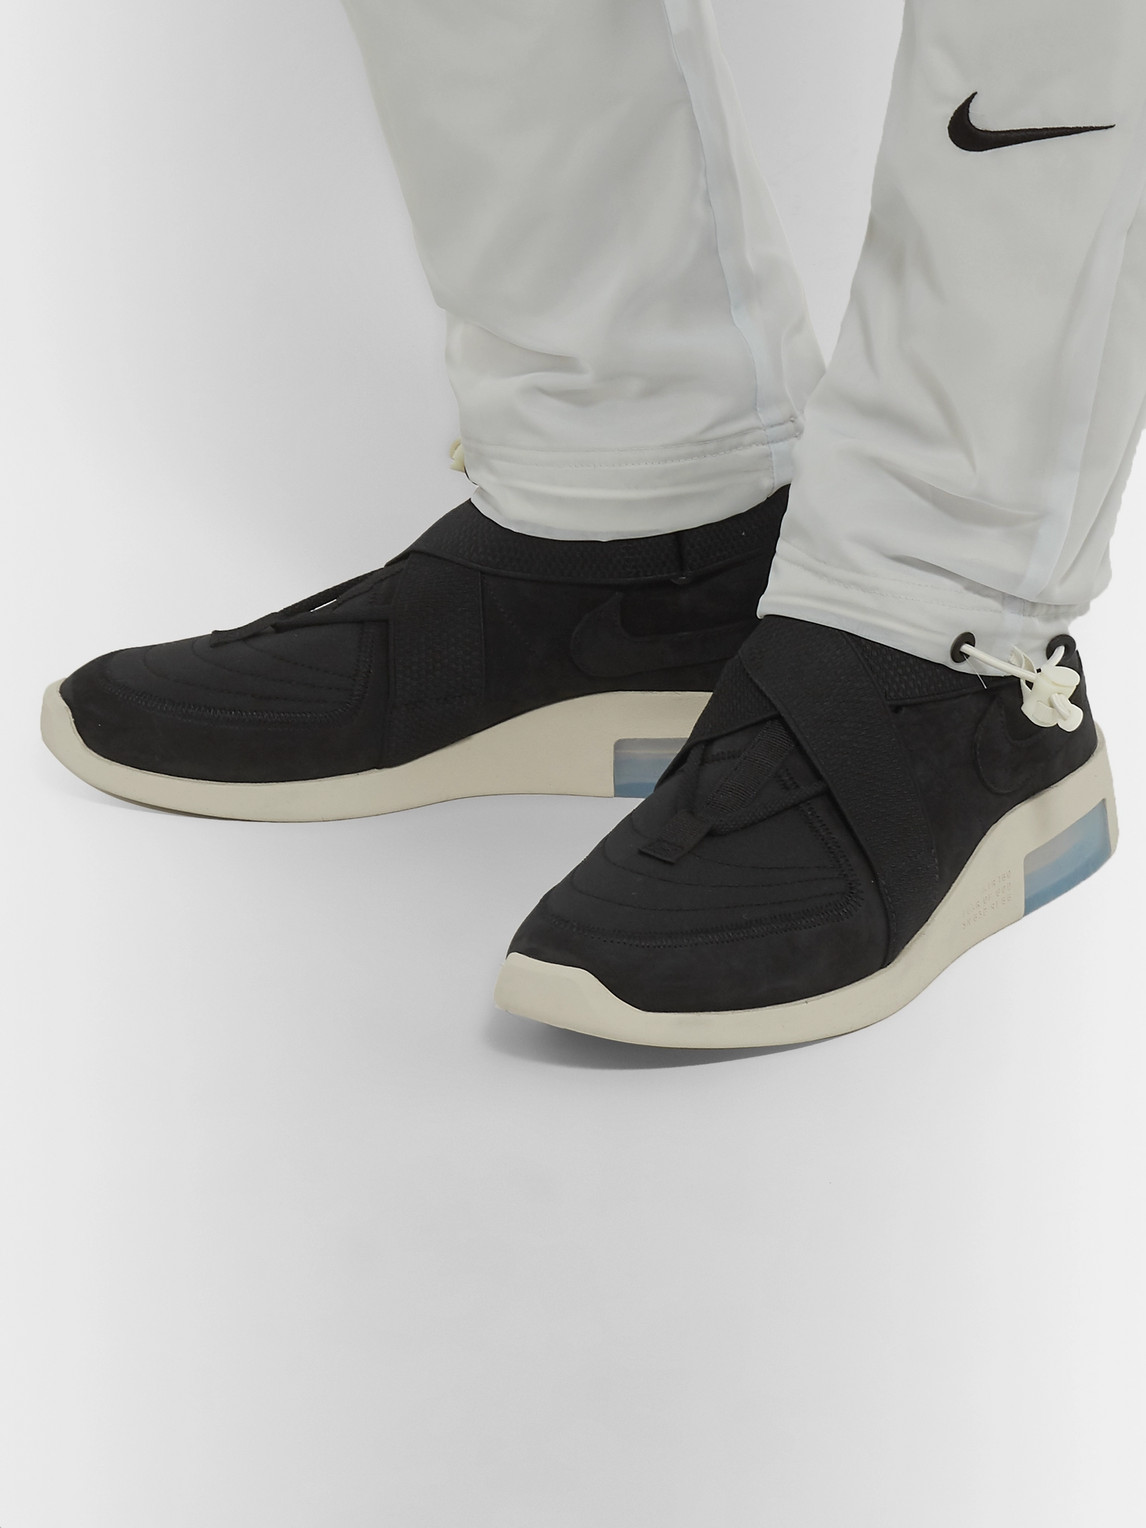 Nike Shoes FEAR OF GOD 1 AIR RAID SUEDE AND WEBBING HIGH